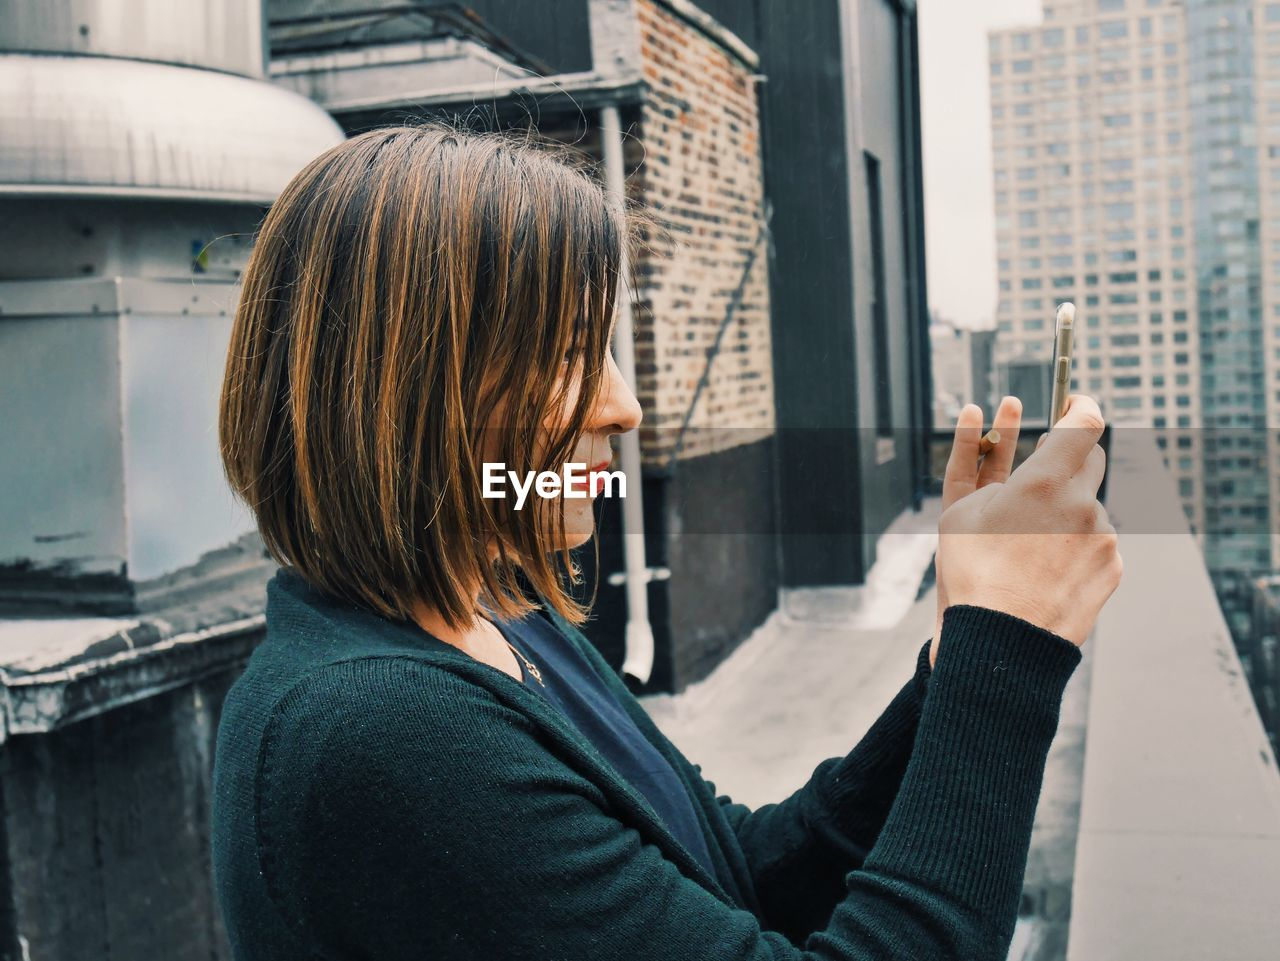 Woman Taking Photo With Smart Phone From Rooftop Balcony